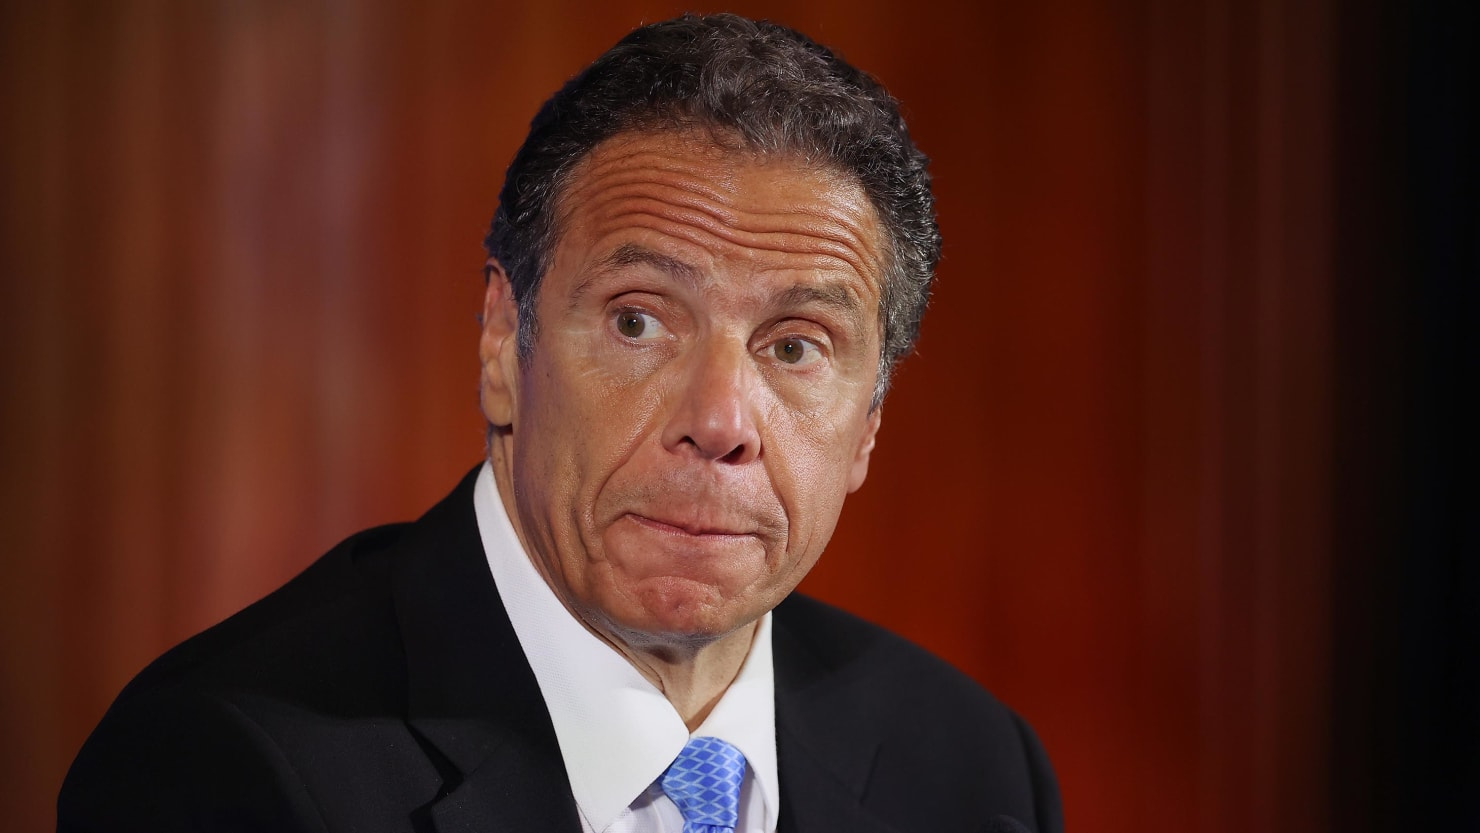 Crude Cuomo's No Trailblazer, but Just Another of Albany's Abusive Creeps